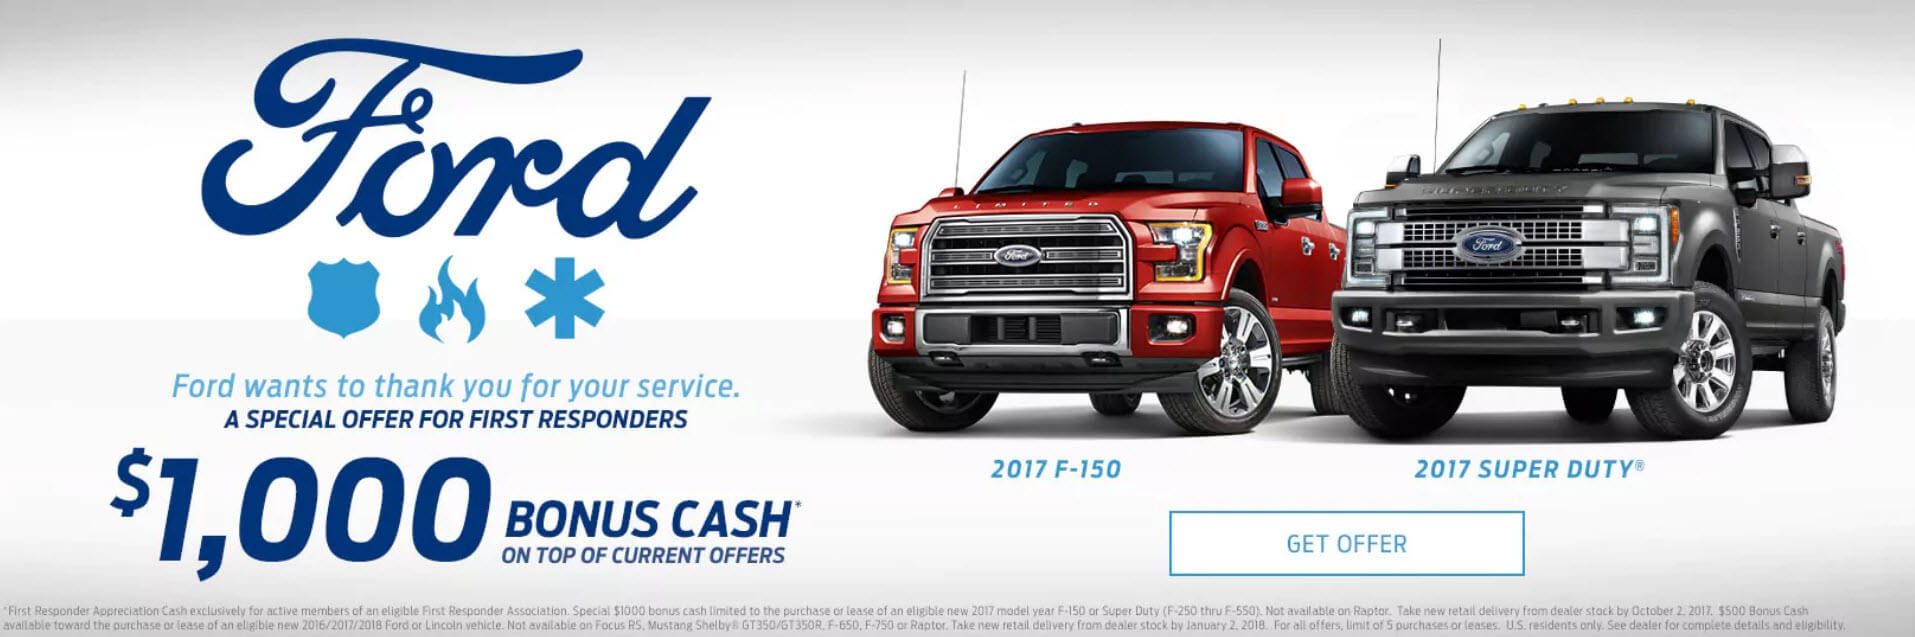 Ford First Responder >> Ford First Responders Bonus Cash Ray Price Ford